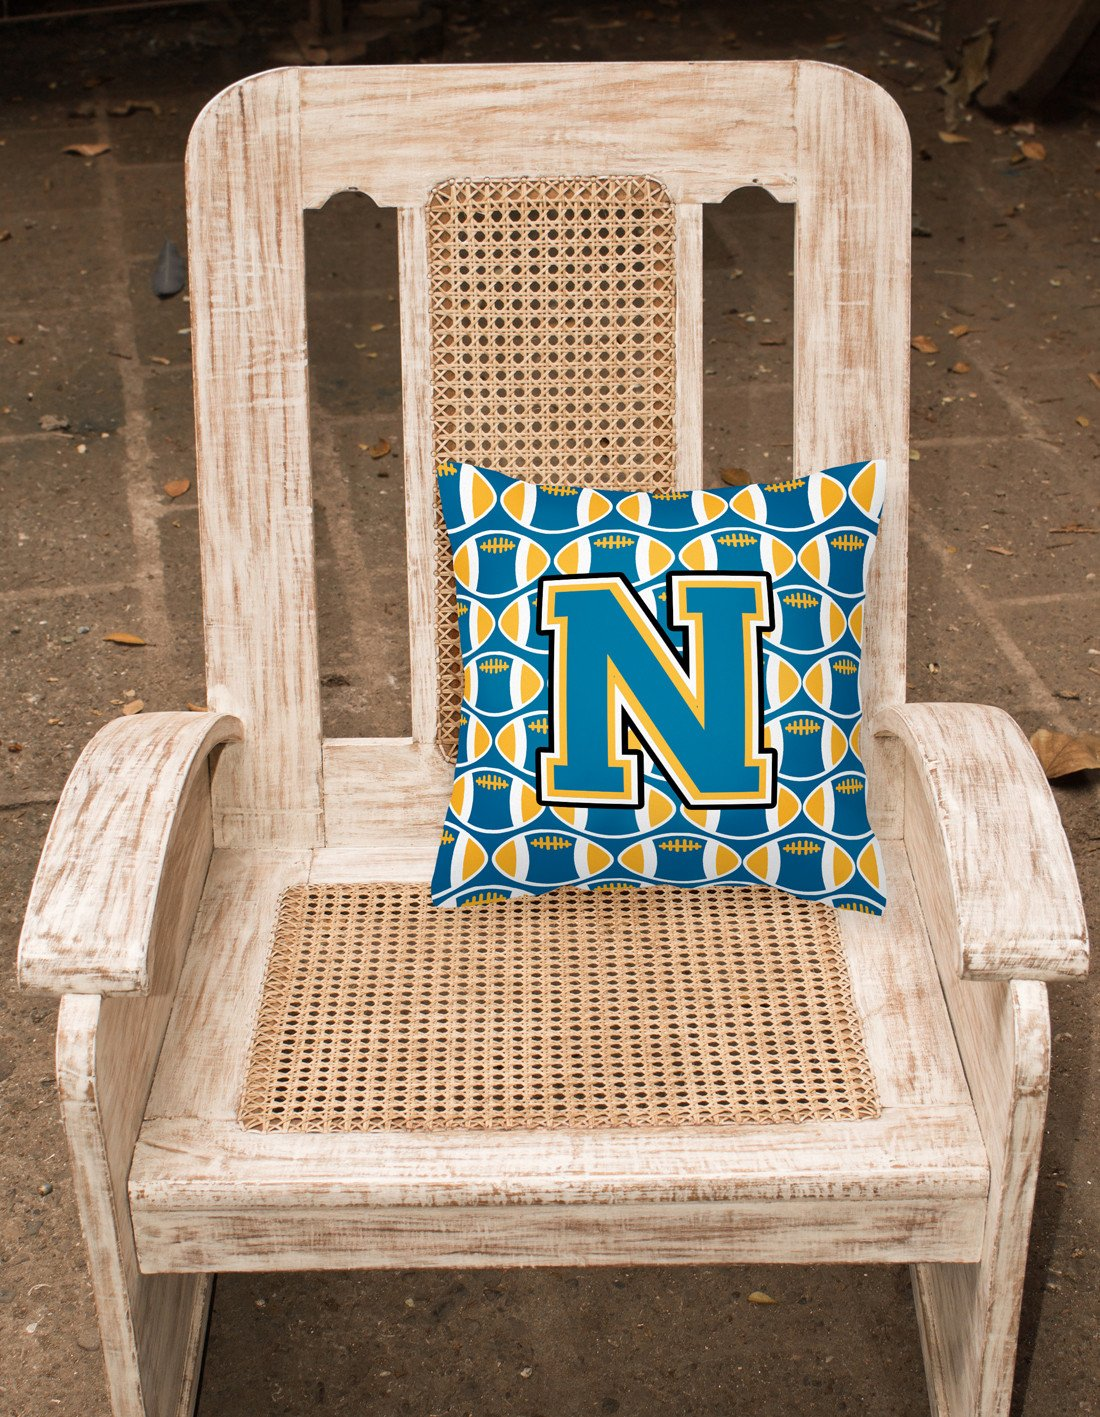 Letter N Football Blue and Gold Fabric Decorative Pillow CJ1077-NPW1414 by Caroline's Treasures